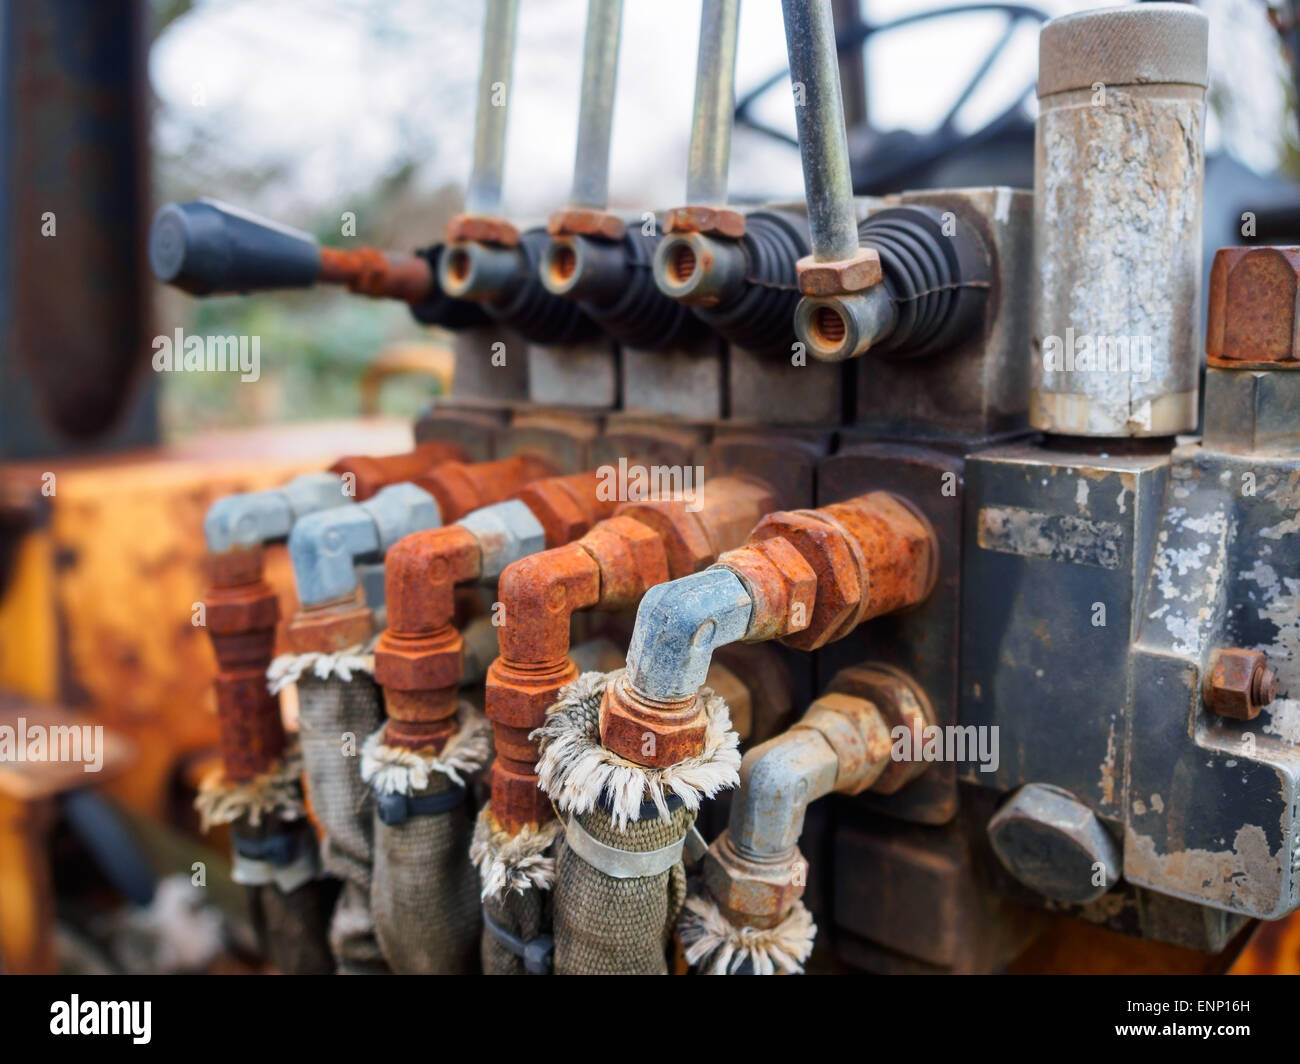 Rusty hydraulic valves and levers on an old tractor. - Stock Image